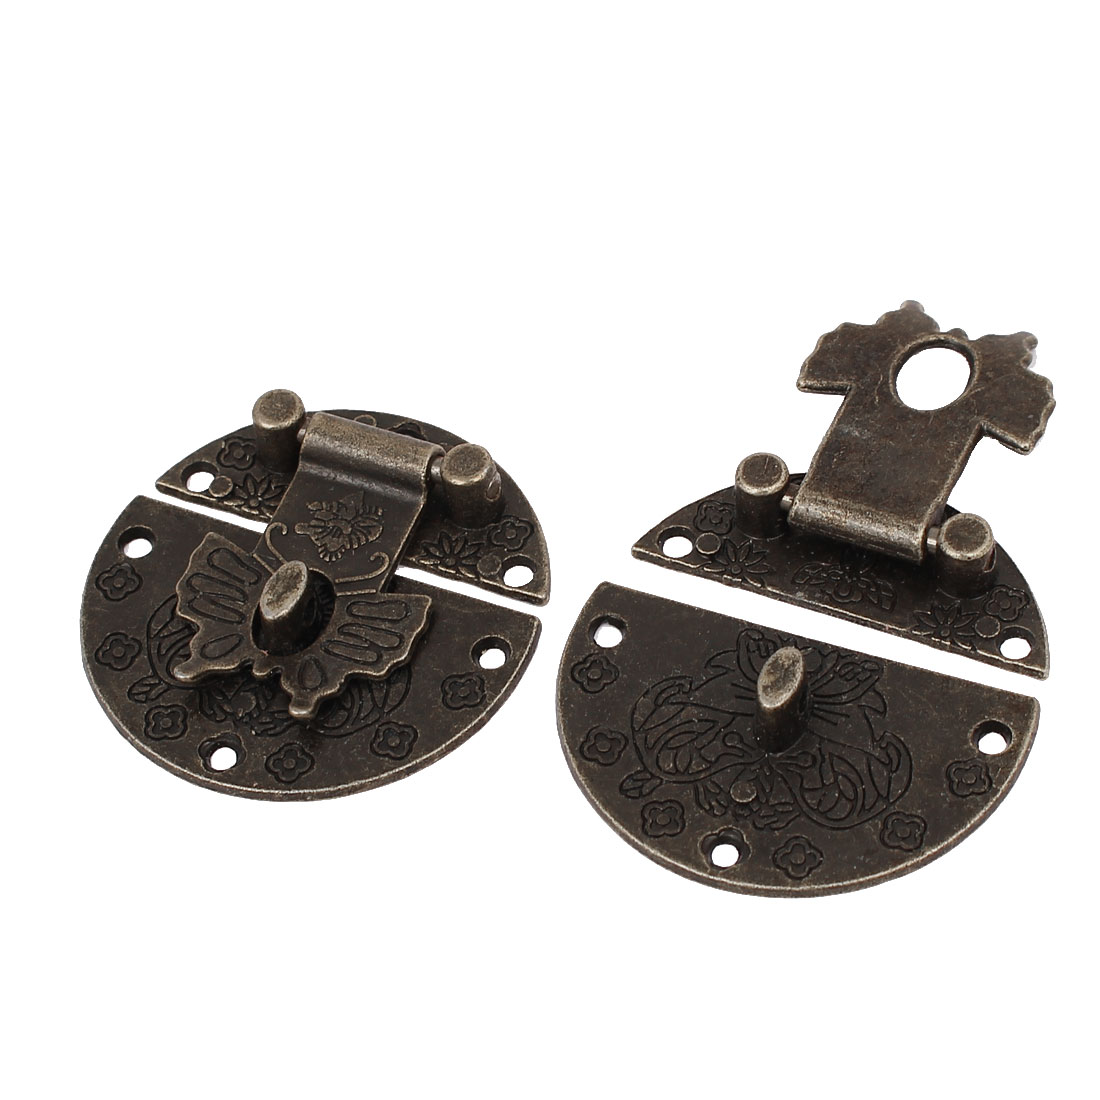 Box Suitcase Antique Style Butterfly Design Toggle Latch Catch Hasp Lock 2pcs